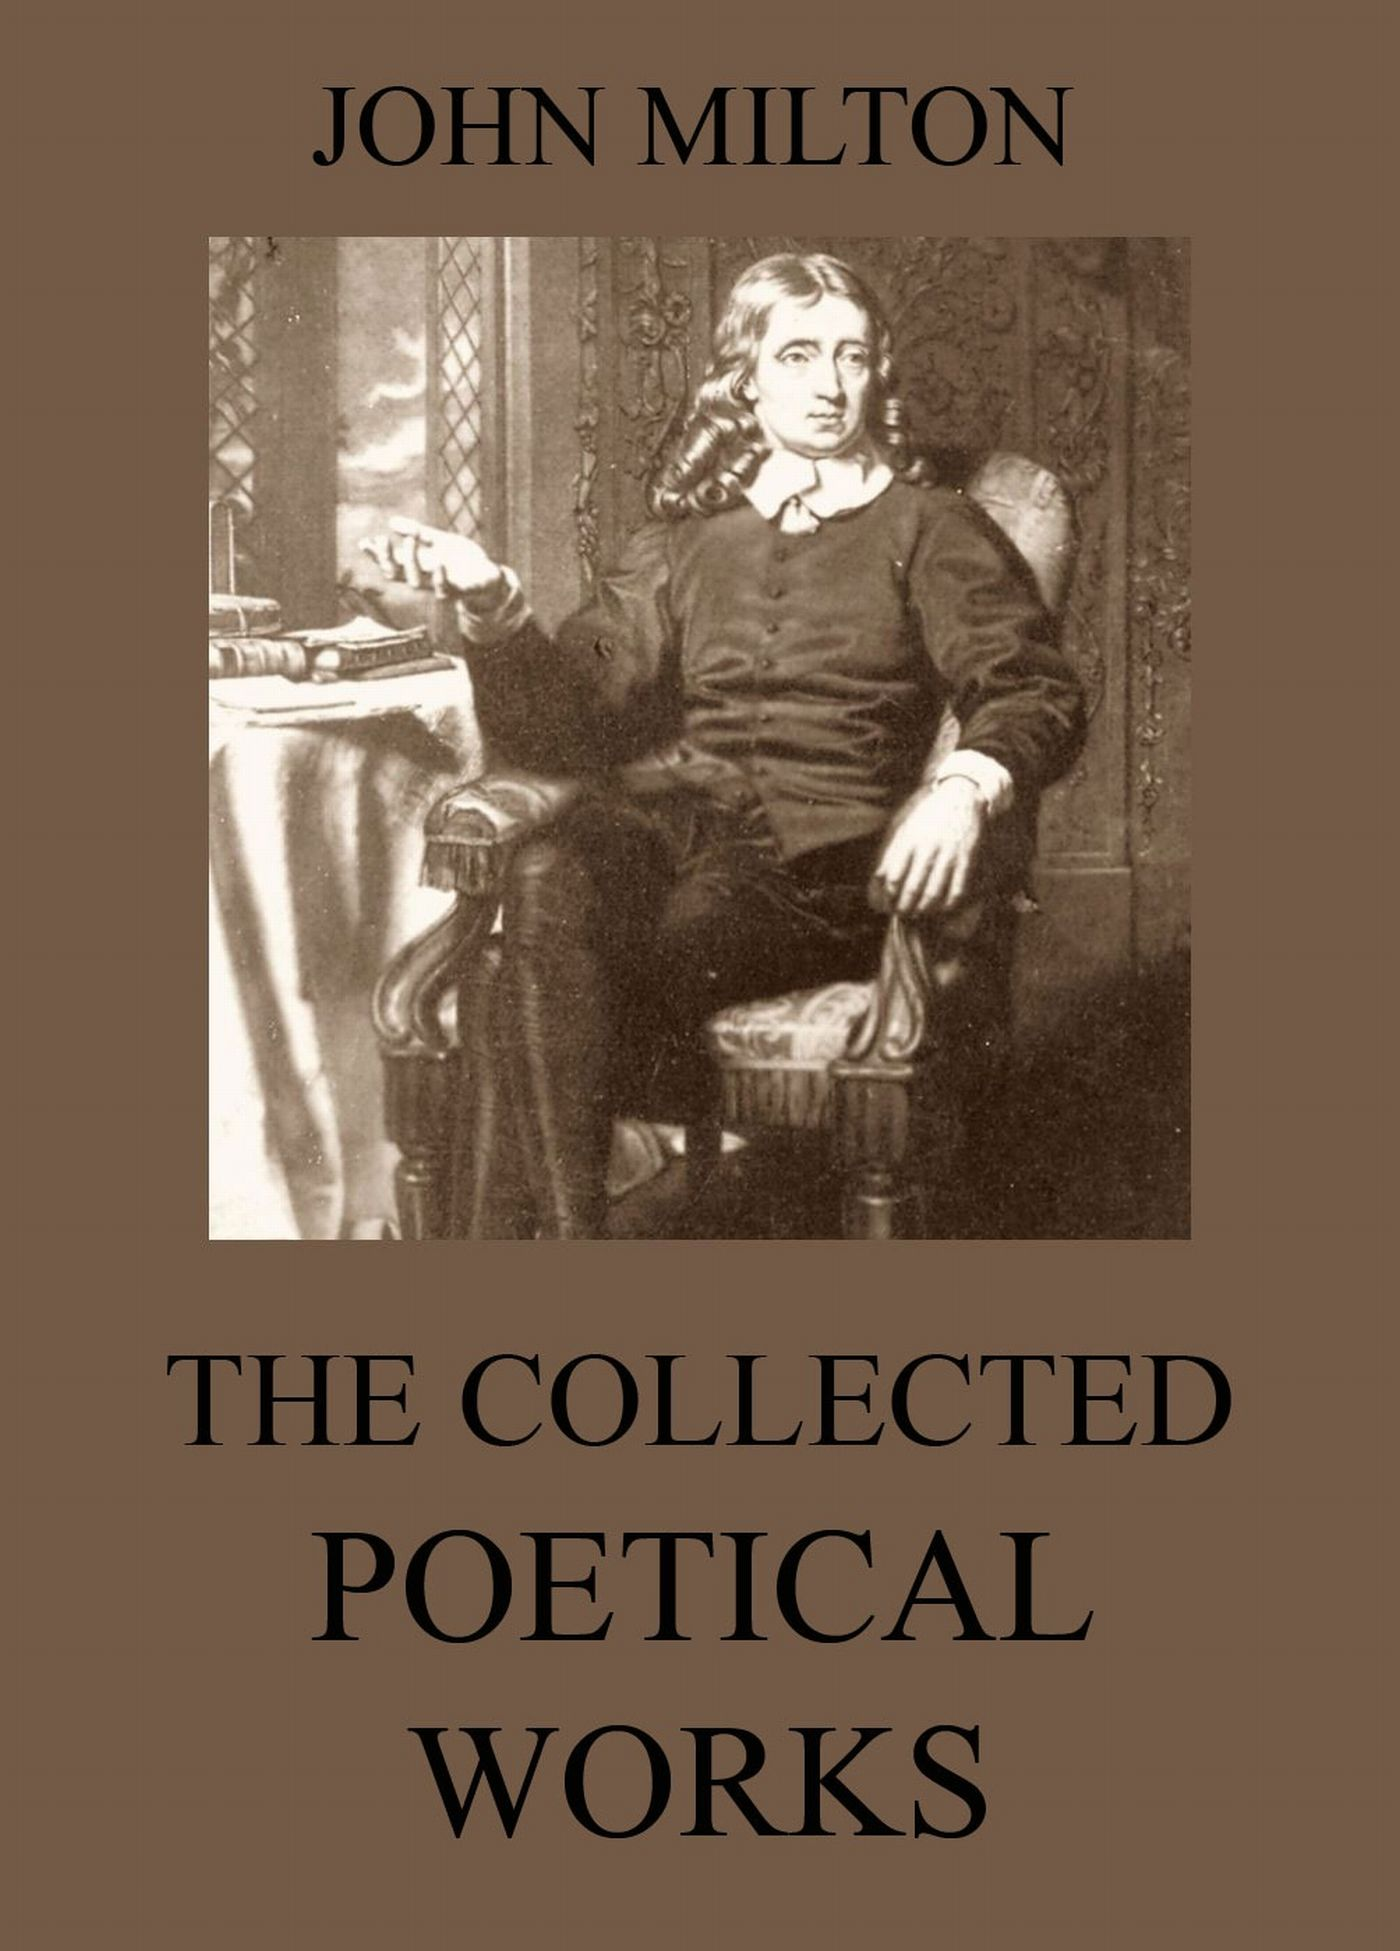 John Laws Milton The Collected Poetical Works of John Milton milton rogovin – the forgotten ones